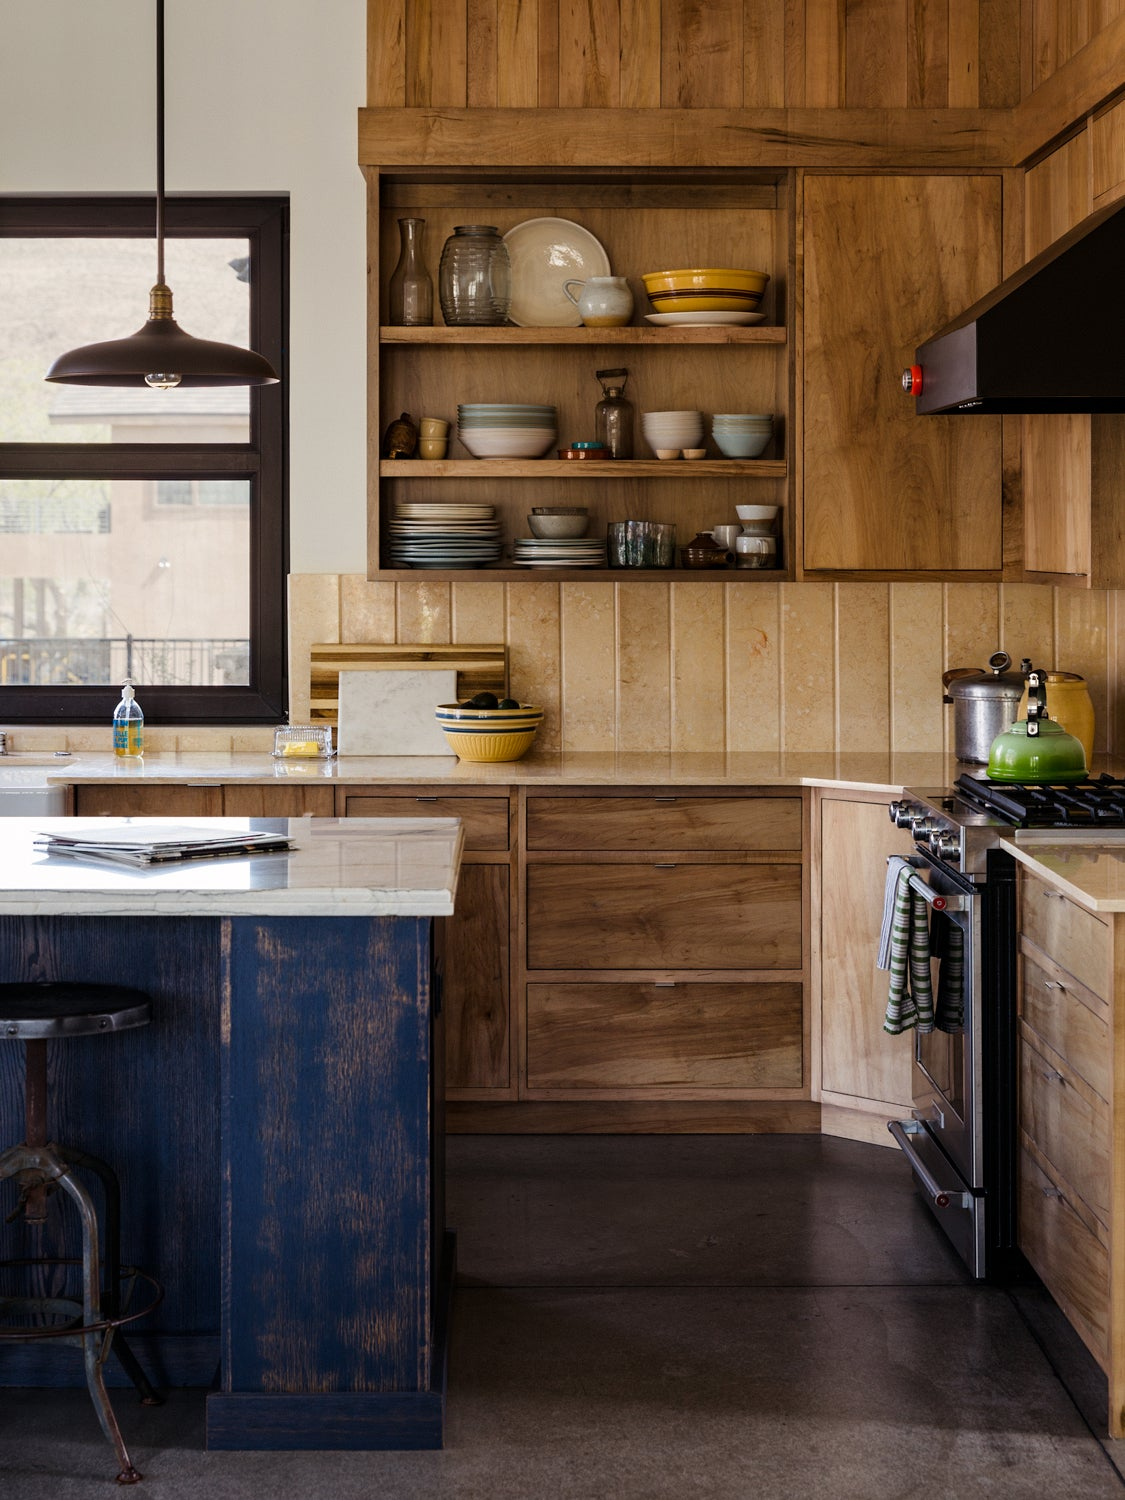 00-FEATURE-rustic-kitchen-cabinets-domino